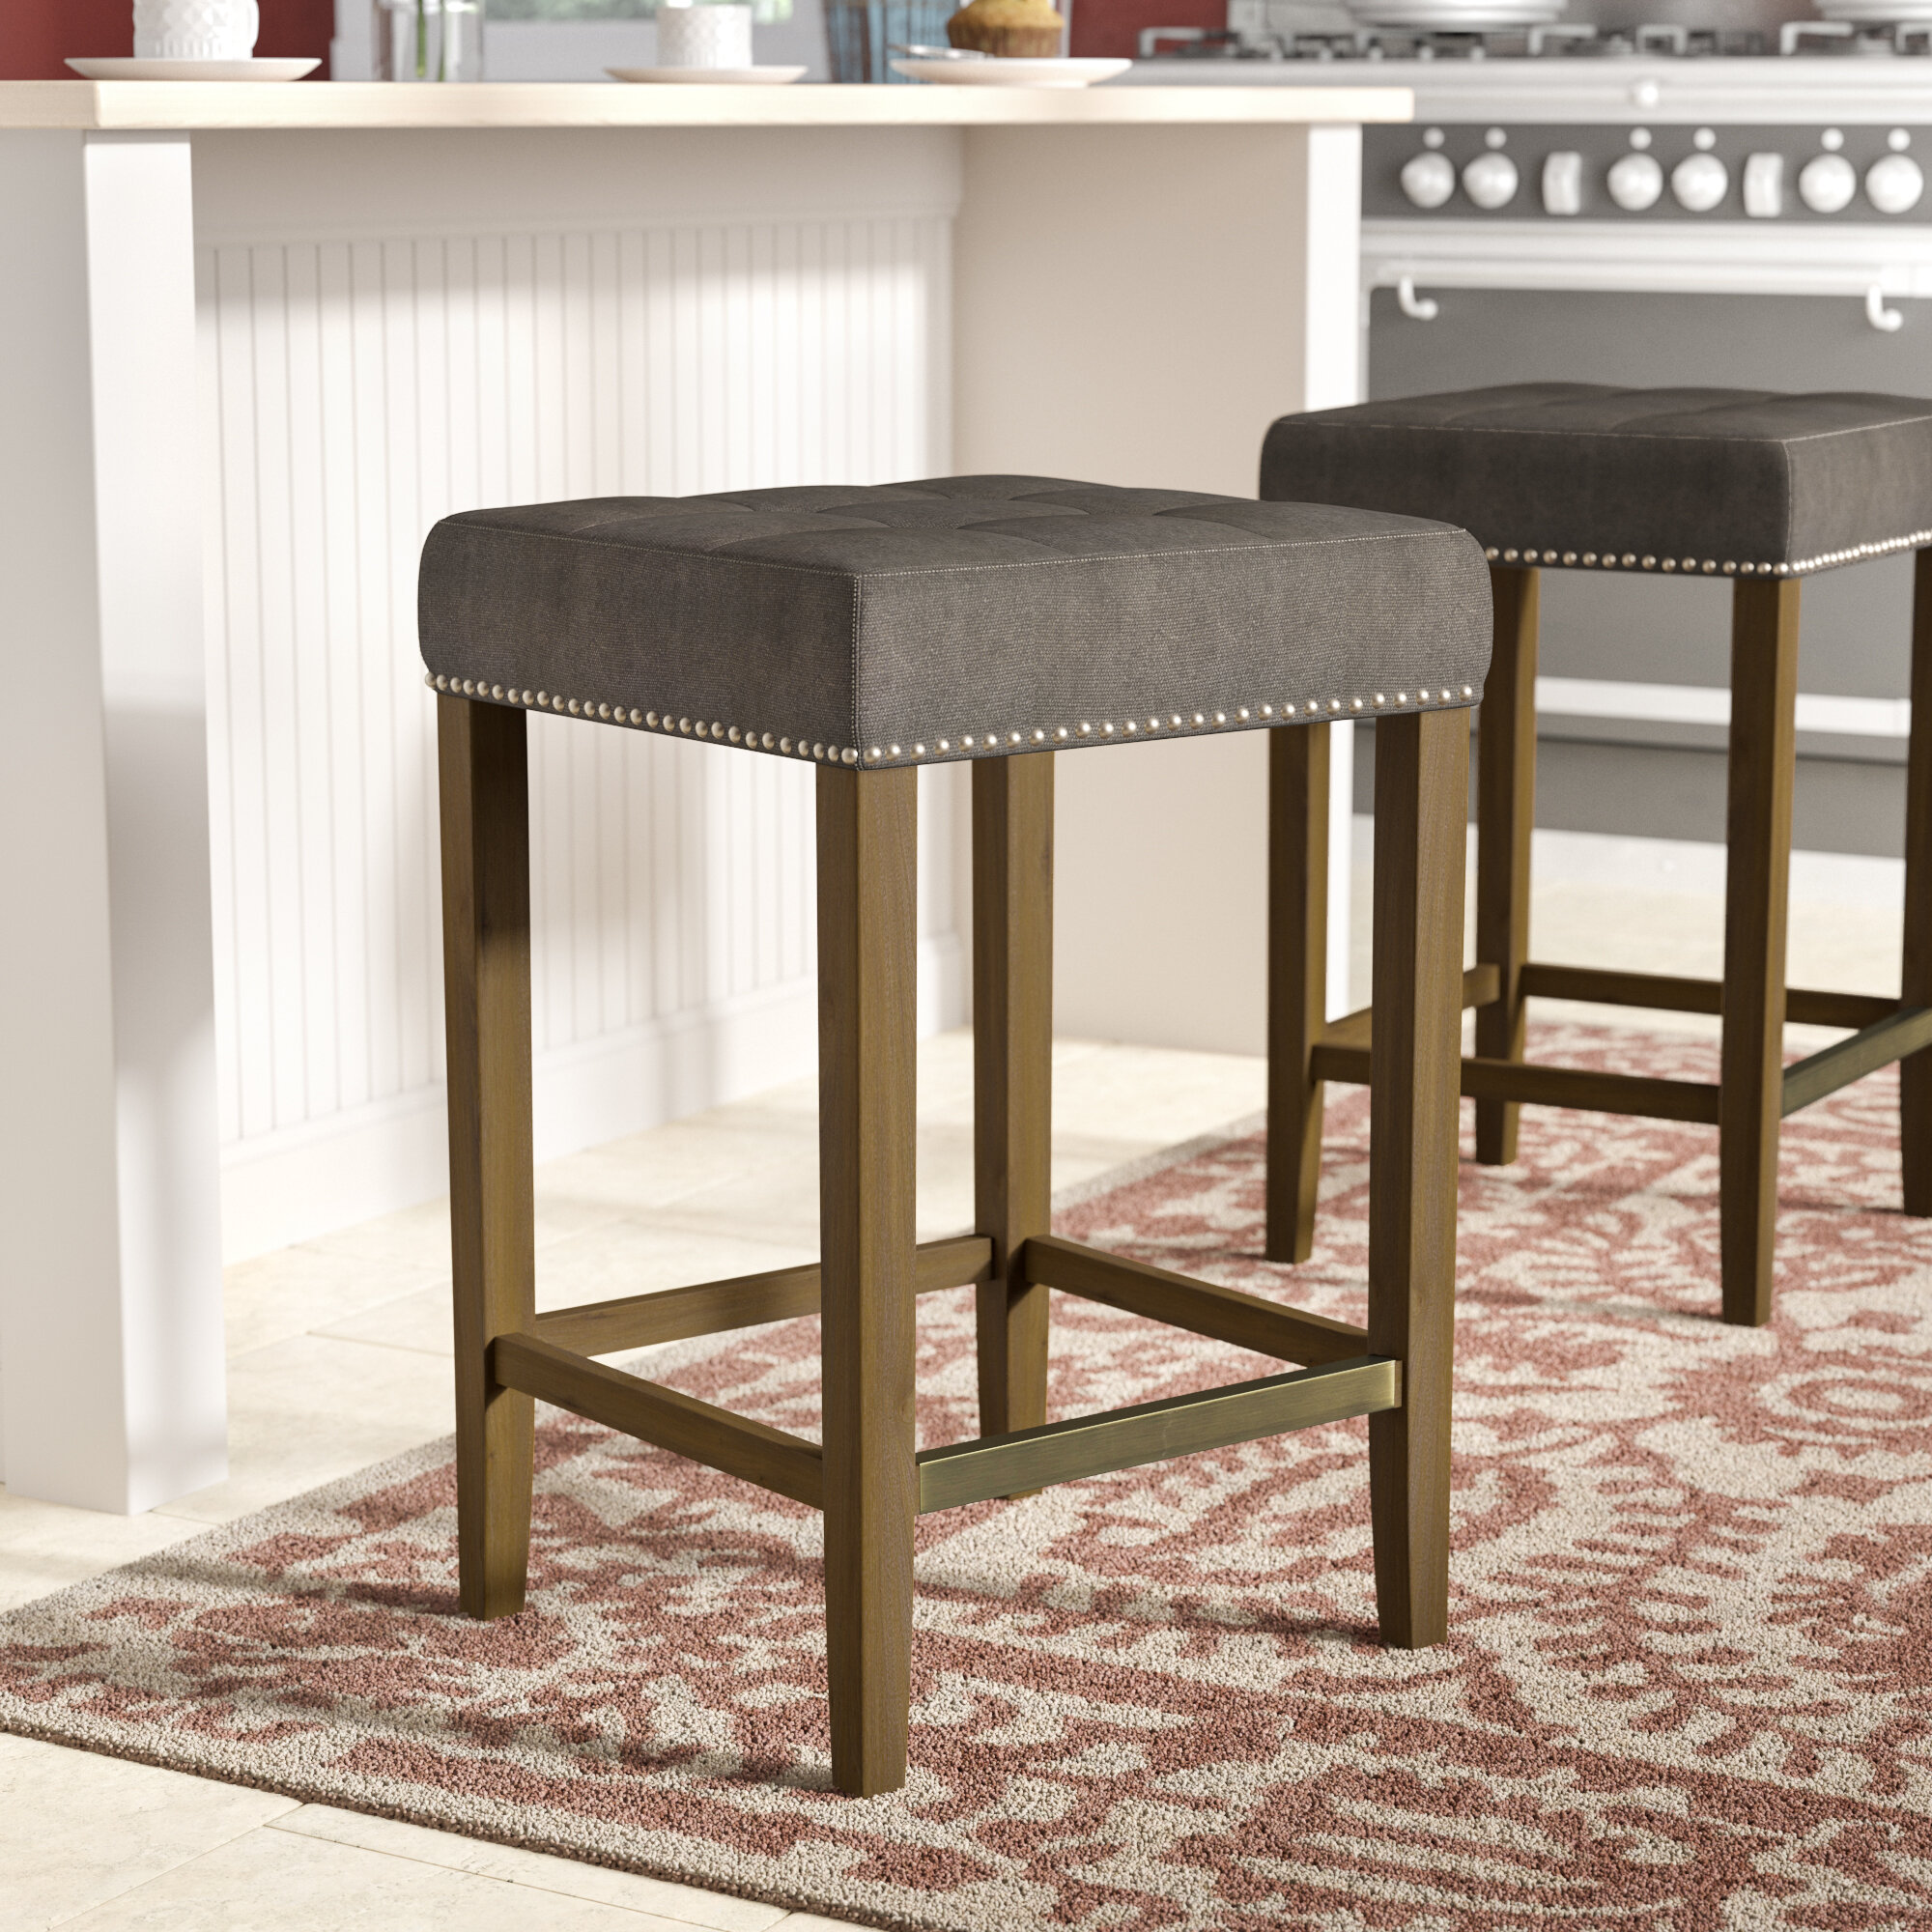 on and winsome australia single inch rectangle seat category sale round stool counter ideas master black bar stools saddle with wood rta cushions